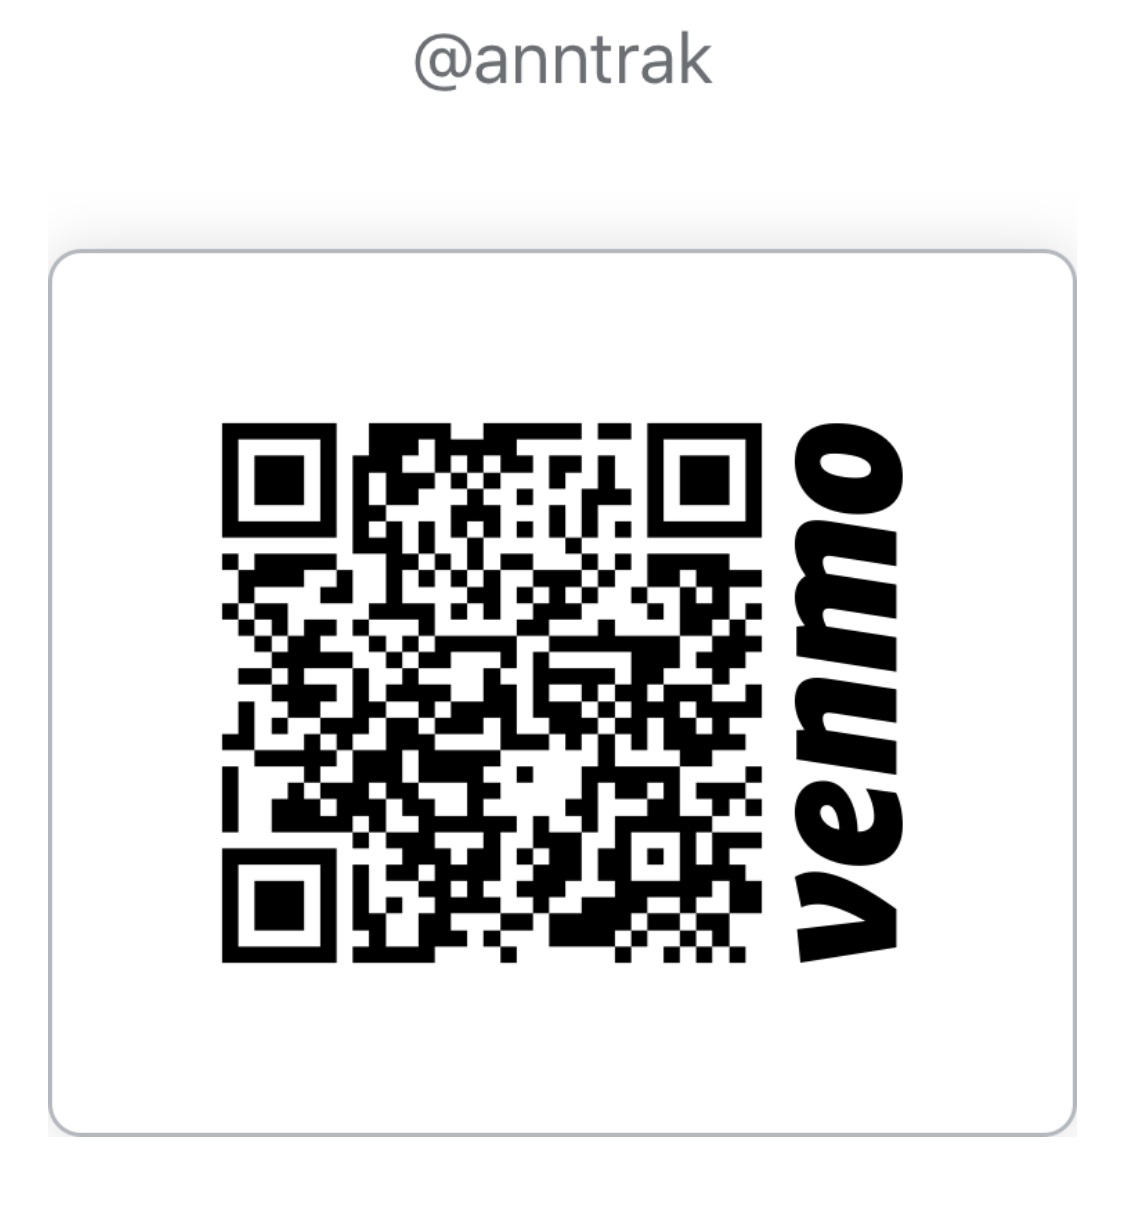 Scan to donate - Open your camera app and scan the code or search for @anntrak on venmo